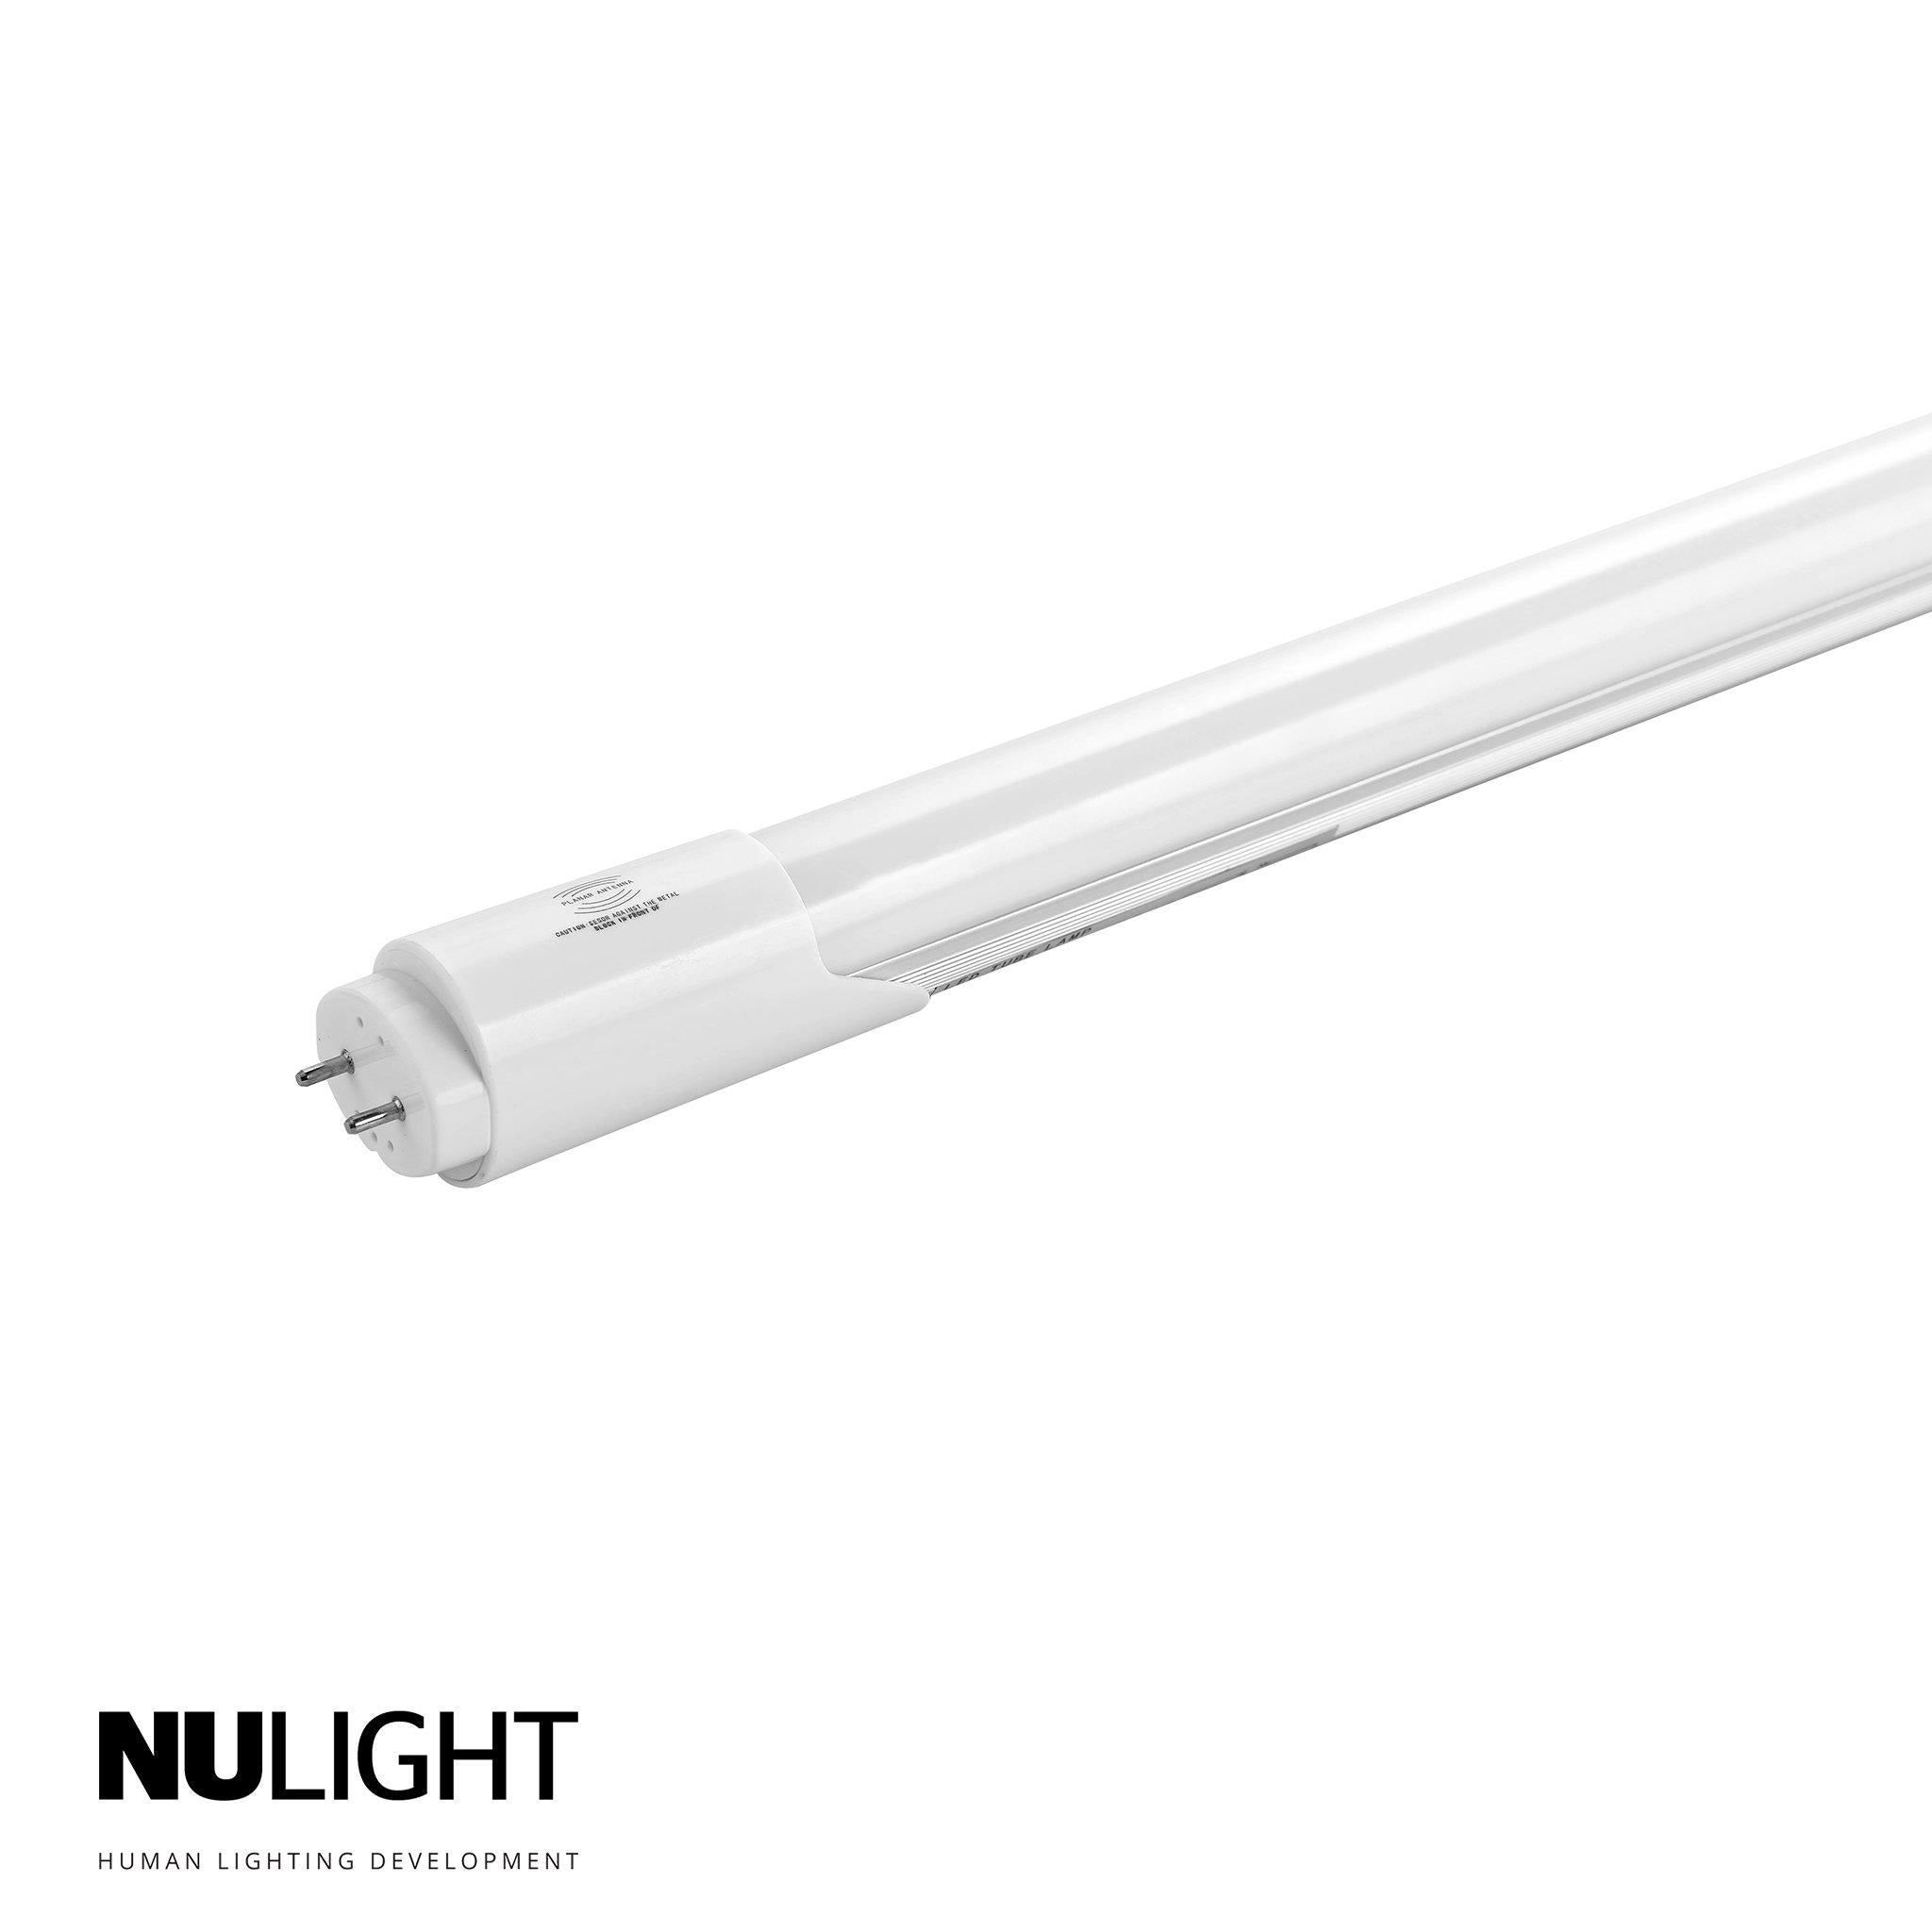 Tubo LED 18W con Sensor Movimiento Radar